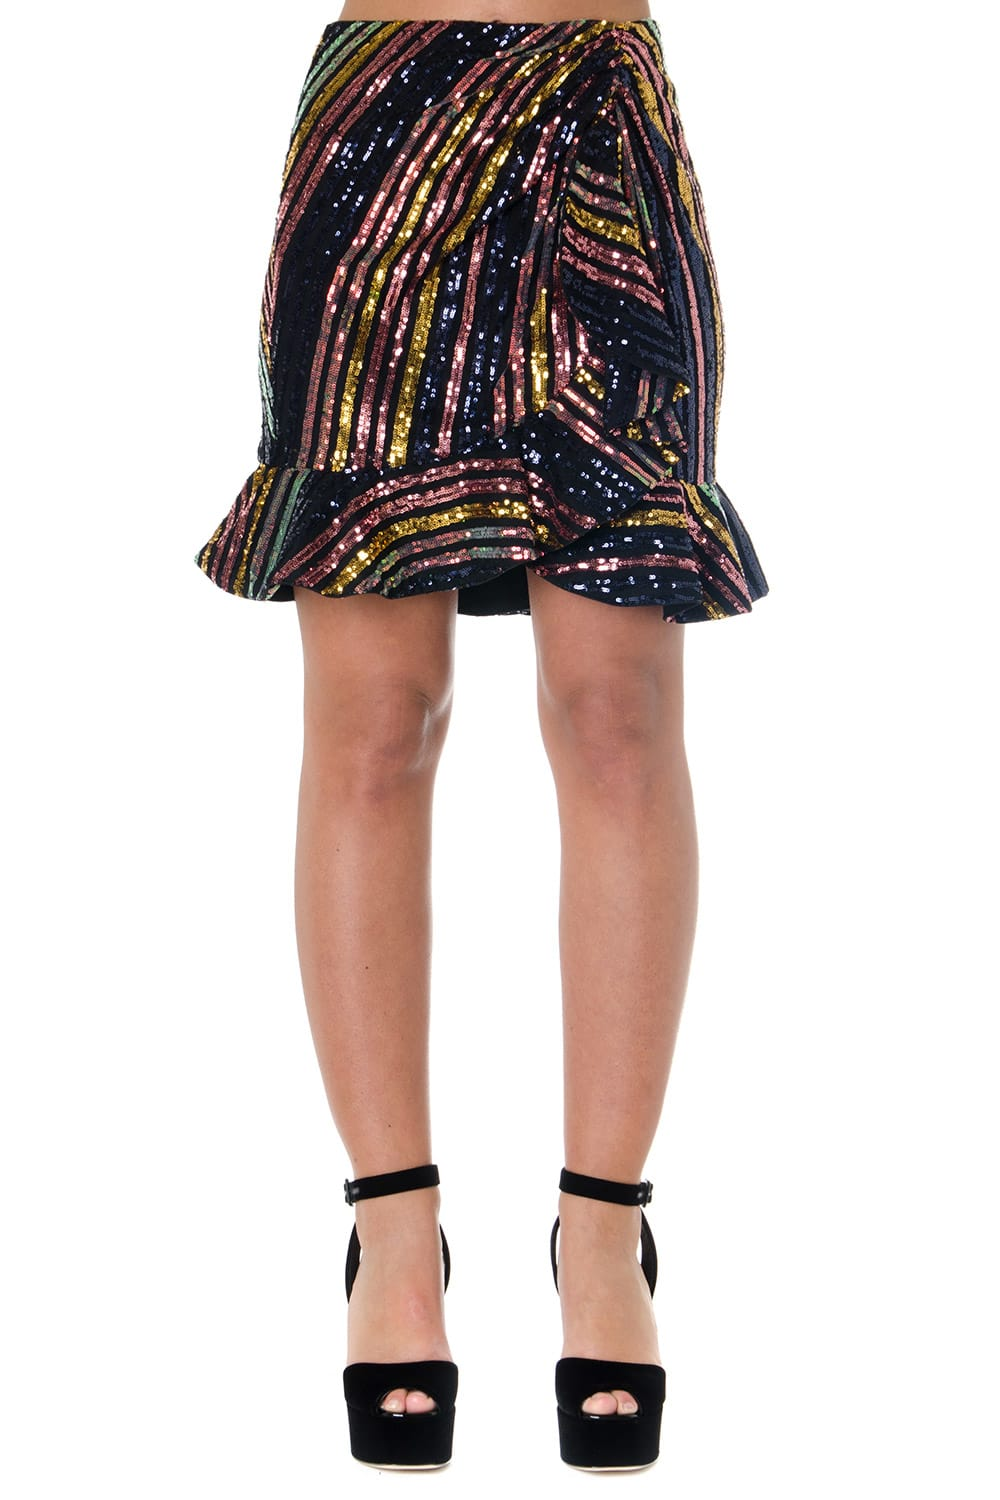 Self-Portrait MULTICOLOR SEQUINED SKIRT